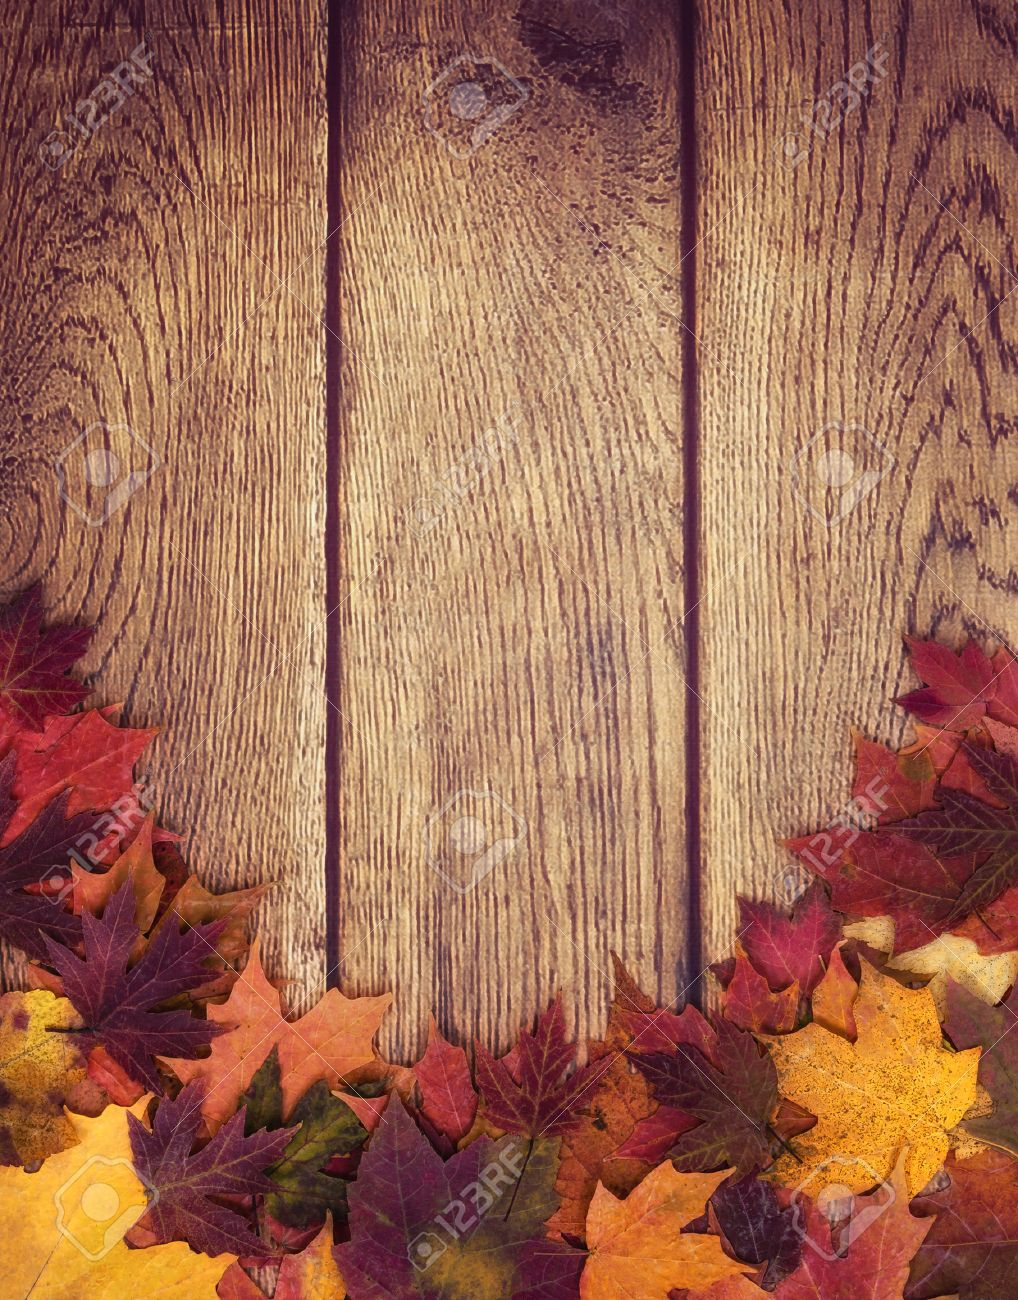 autumn leaves border against wooden background fall background